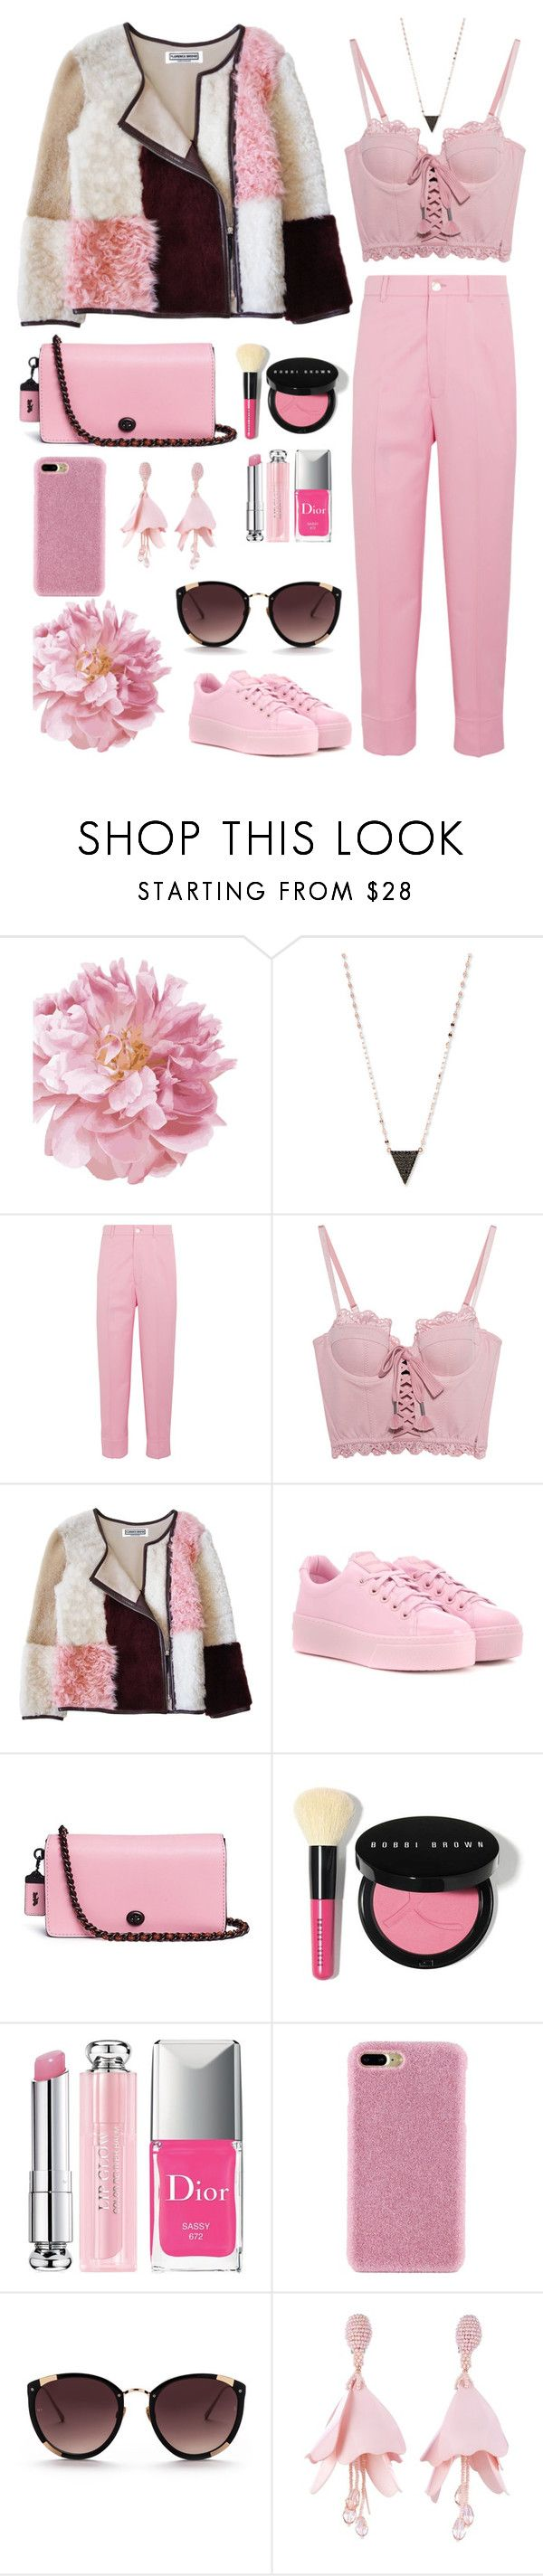 """""""All About Pink!"""" by orrinn ❤ liked on Polyvore featuring Lana, Gucci, Puma, Florence Bridge, Kenzo, Coach, Bobbi Brown Cosmetics, Christian Dior, Shibaful and Rebecca Taylor"""